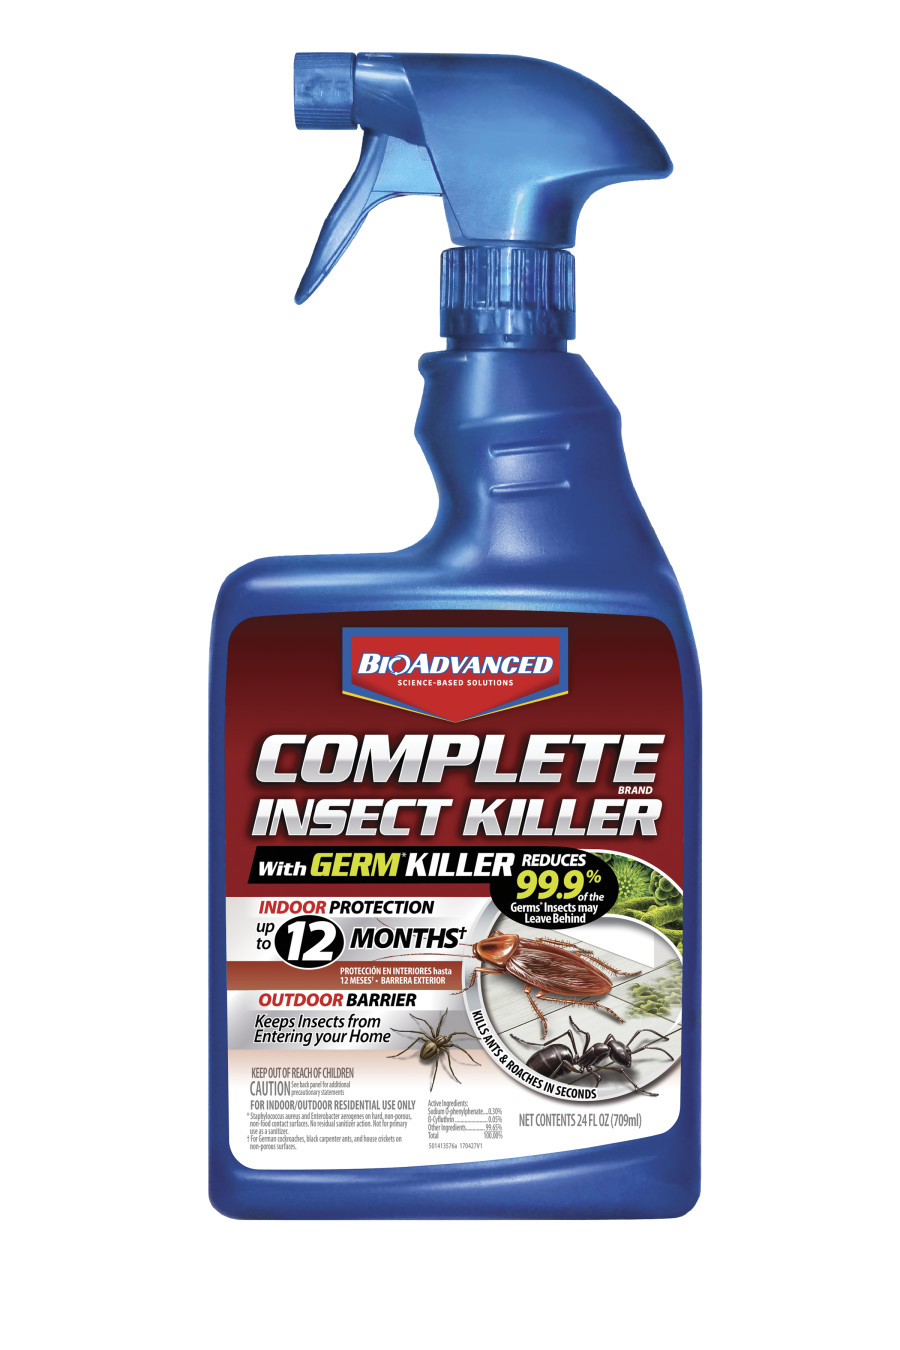 BioAdvanced Complete Insect Killer with Germ Killer Ready to Use 12ea/24 oz